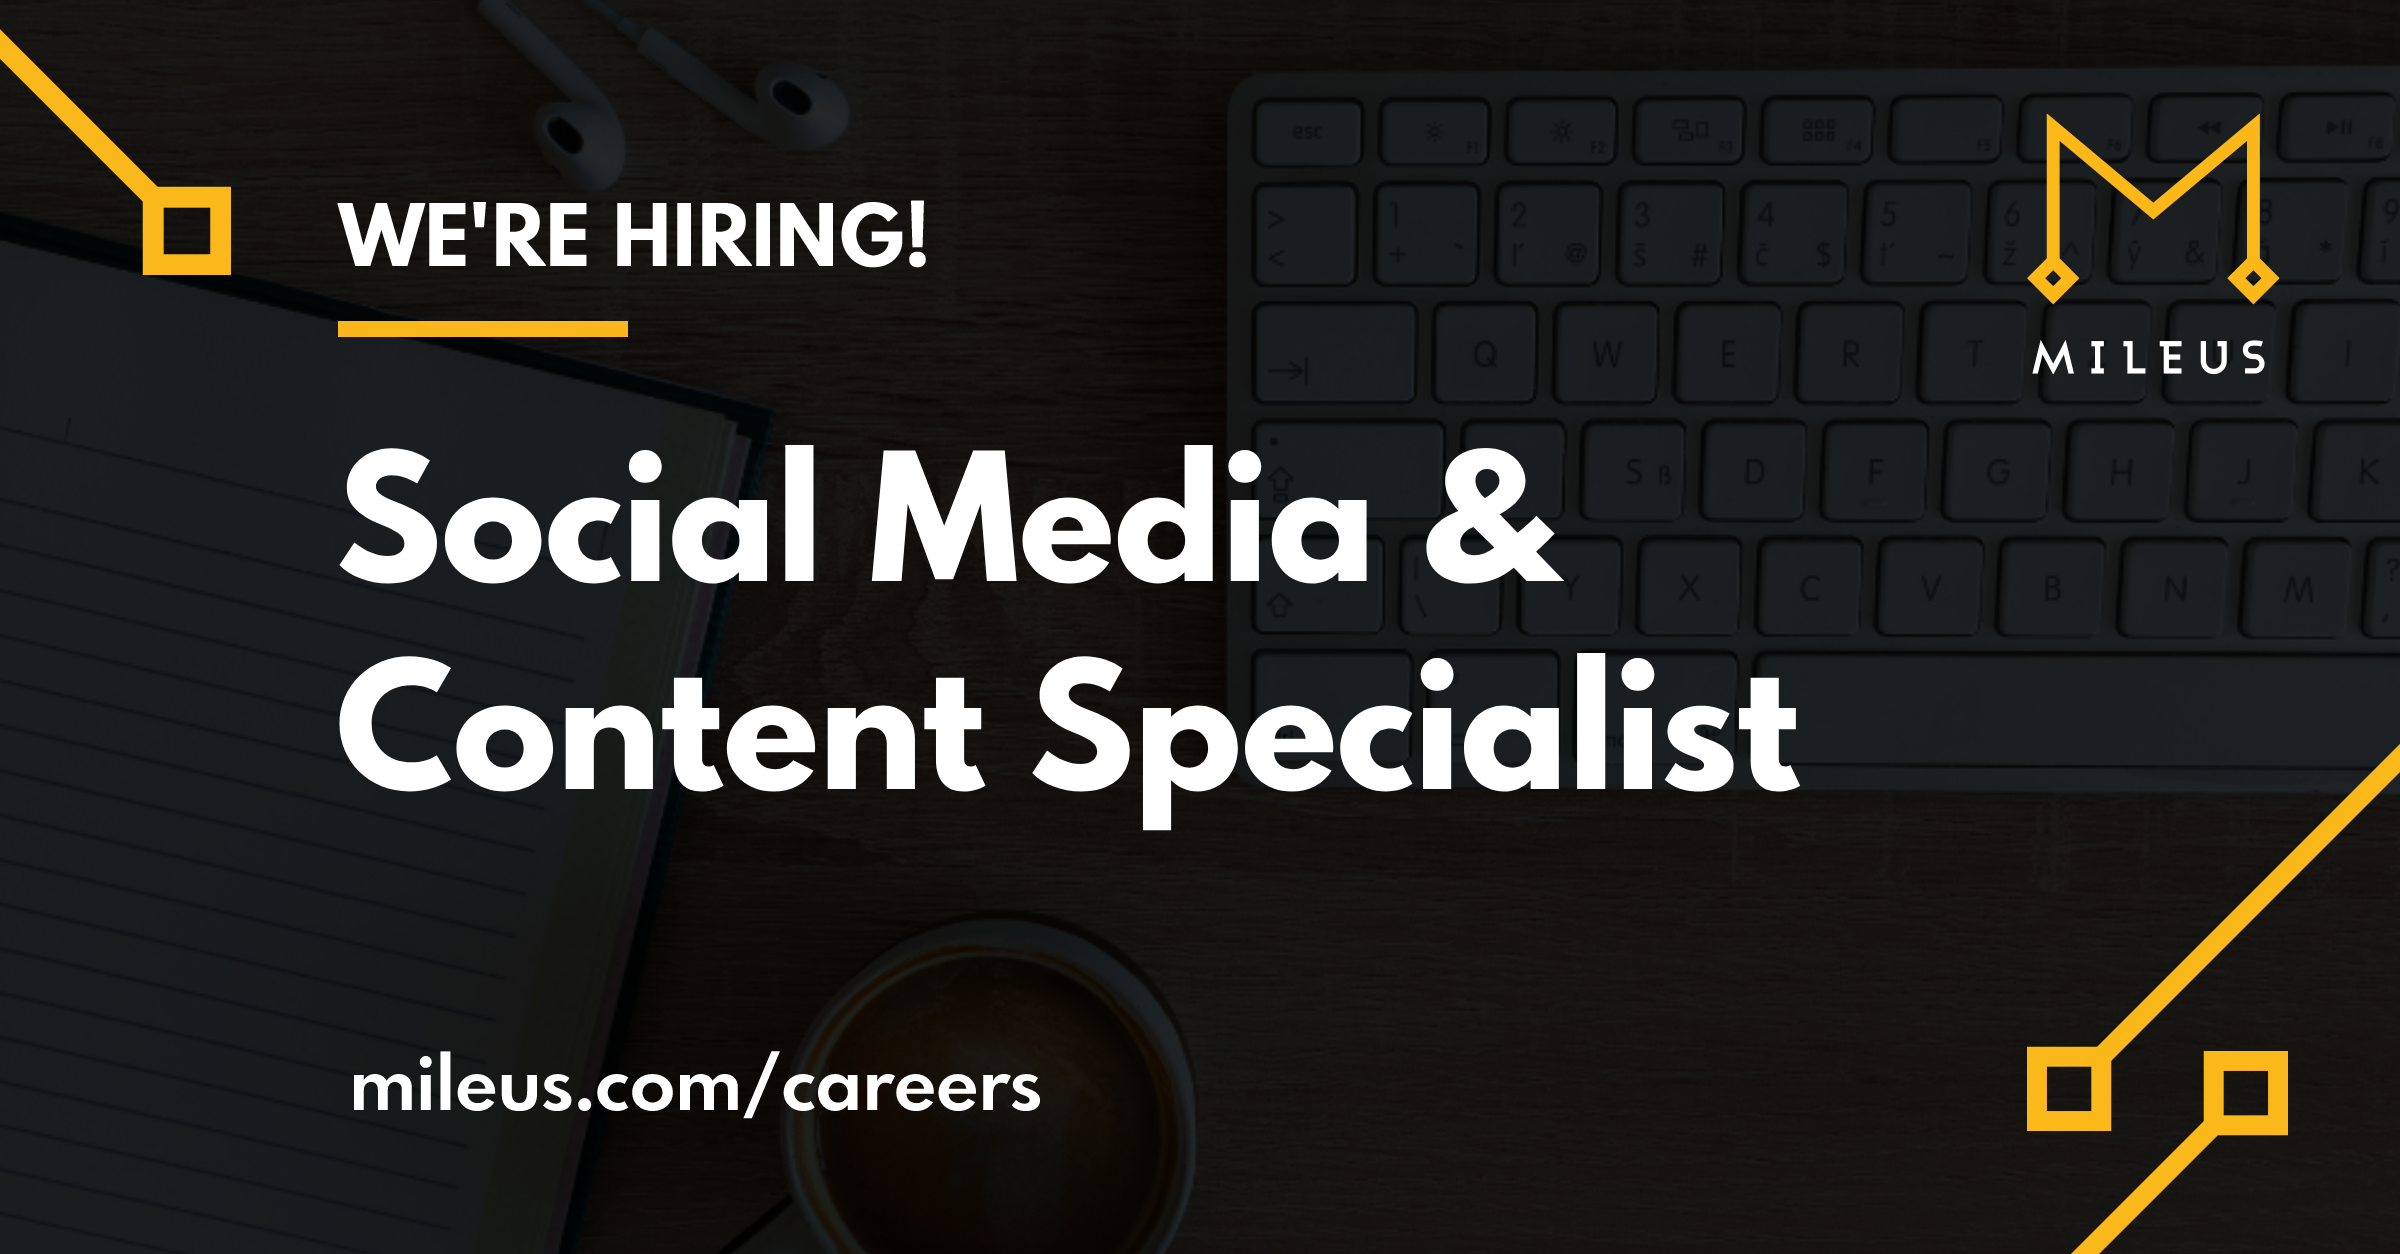 Hiring graphic image for the role Social Media &Content Specialist